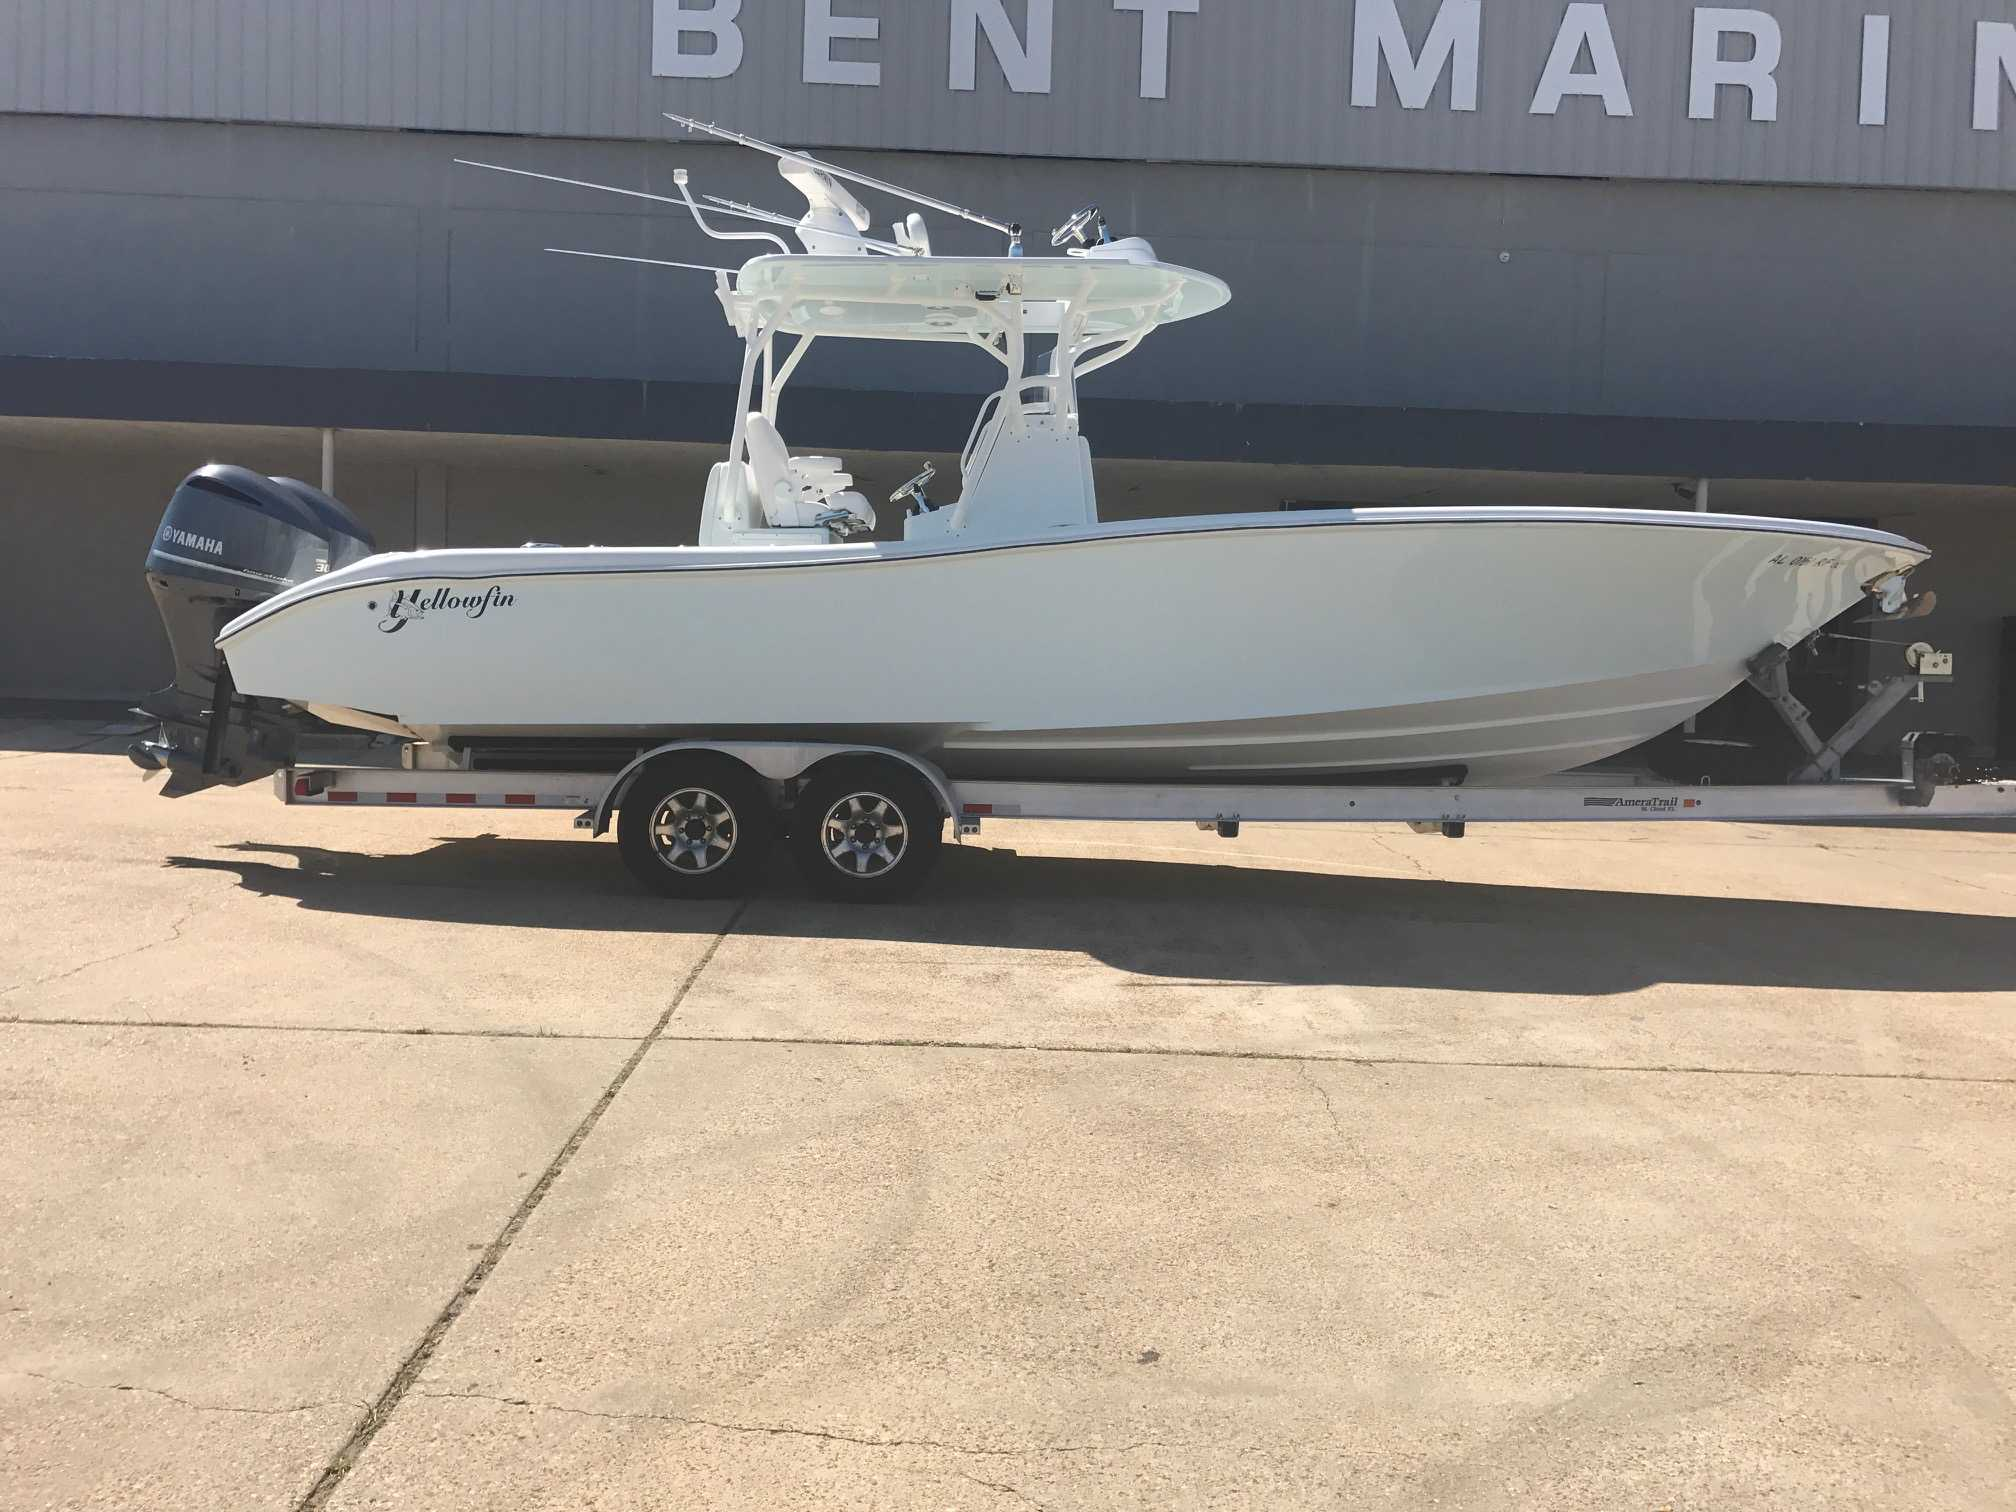 USED 2015 Yellowfin 29 Offshore Center Console